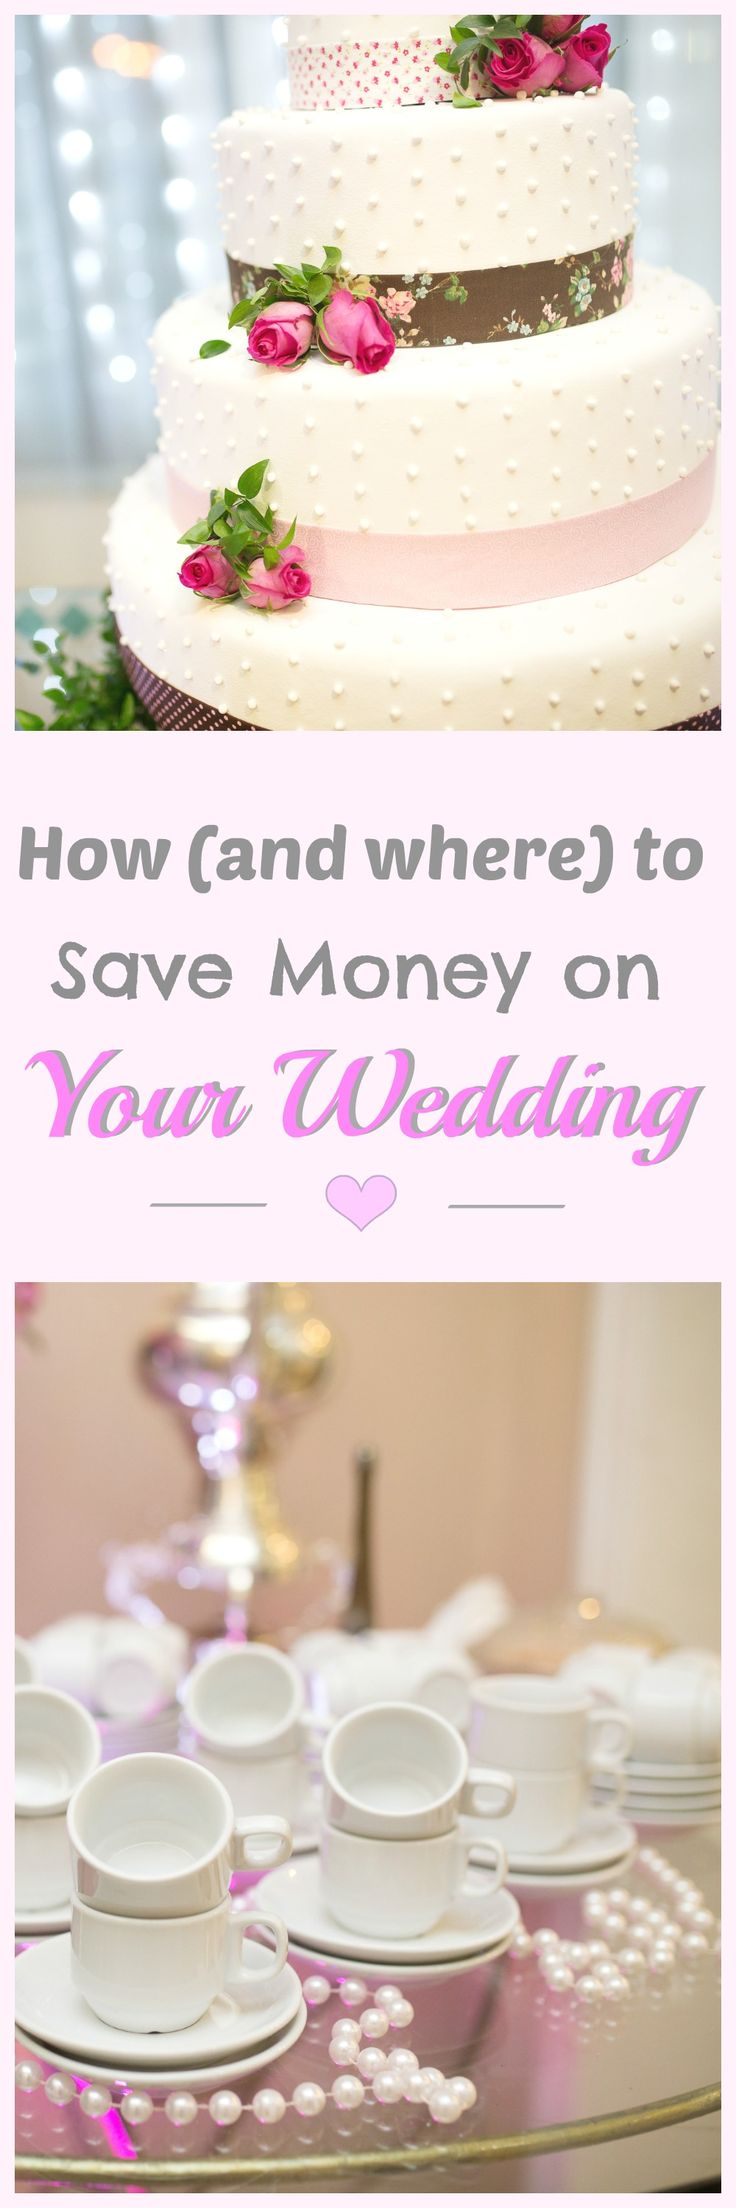 So many new ways to save money on your wedding! Have all of your favourite details without blowing the budget with this ultimate cost cutting list!